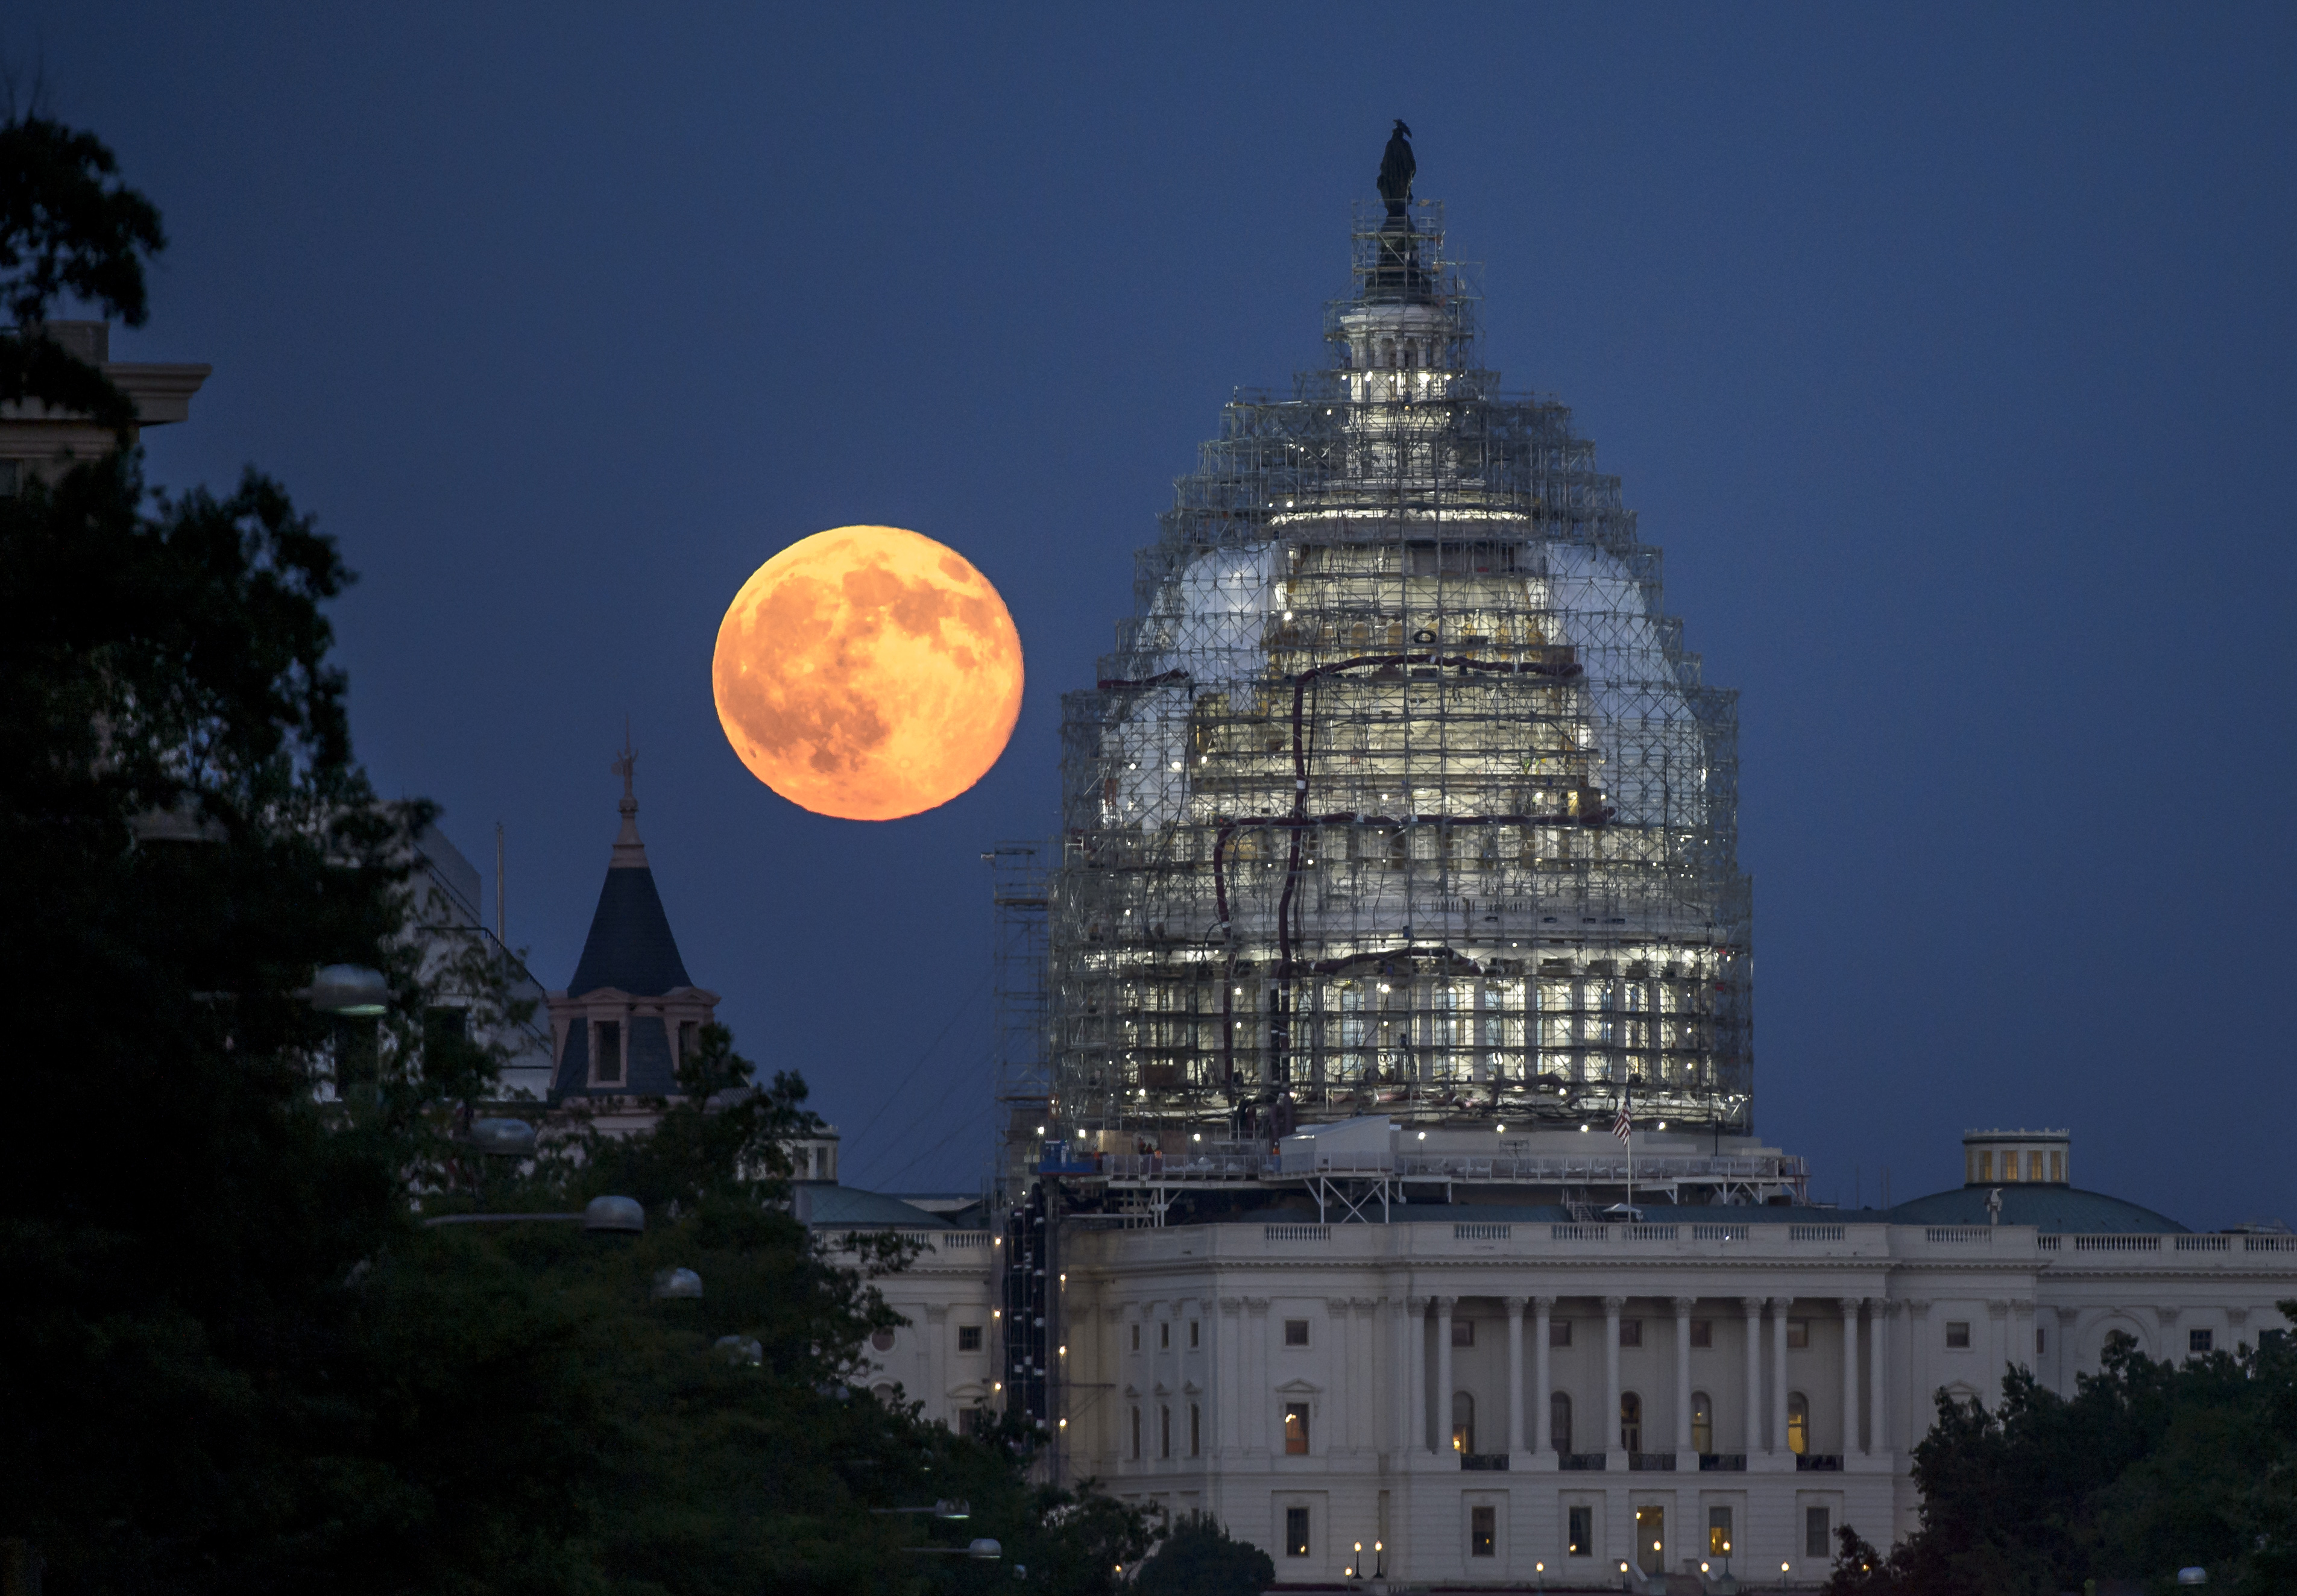 A second full moon for the month of July is seen next to the dome of the U.S. Capitol on Friday, July 31, 2015 in Washington. In recent years, people have been using the name Blue Moon for the second of two full moons in a single calendar month. An older definition of Blue Moon is that it's the third of four full moons in a single season. Photo Credit: (NASA/Bill Ingalls)